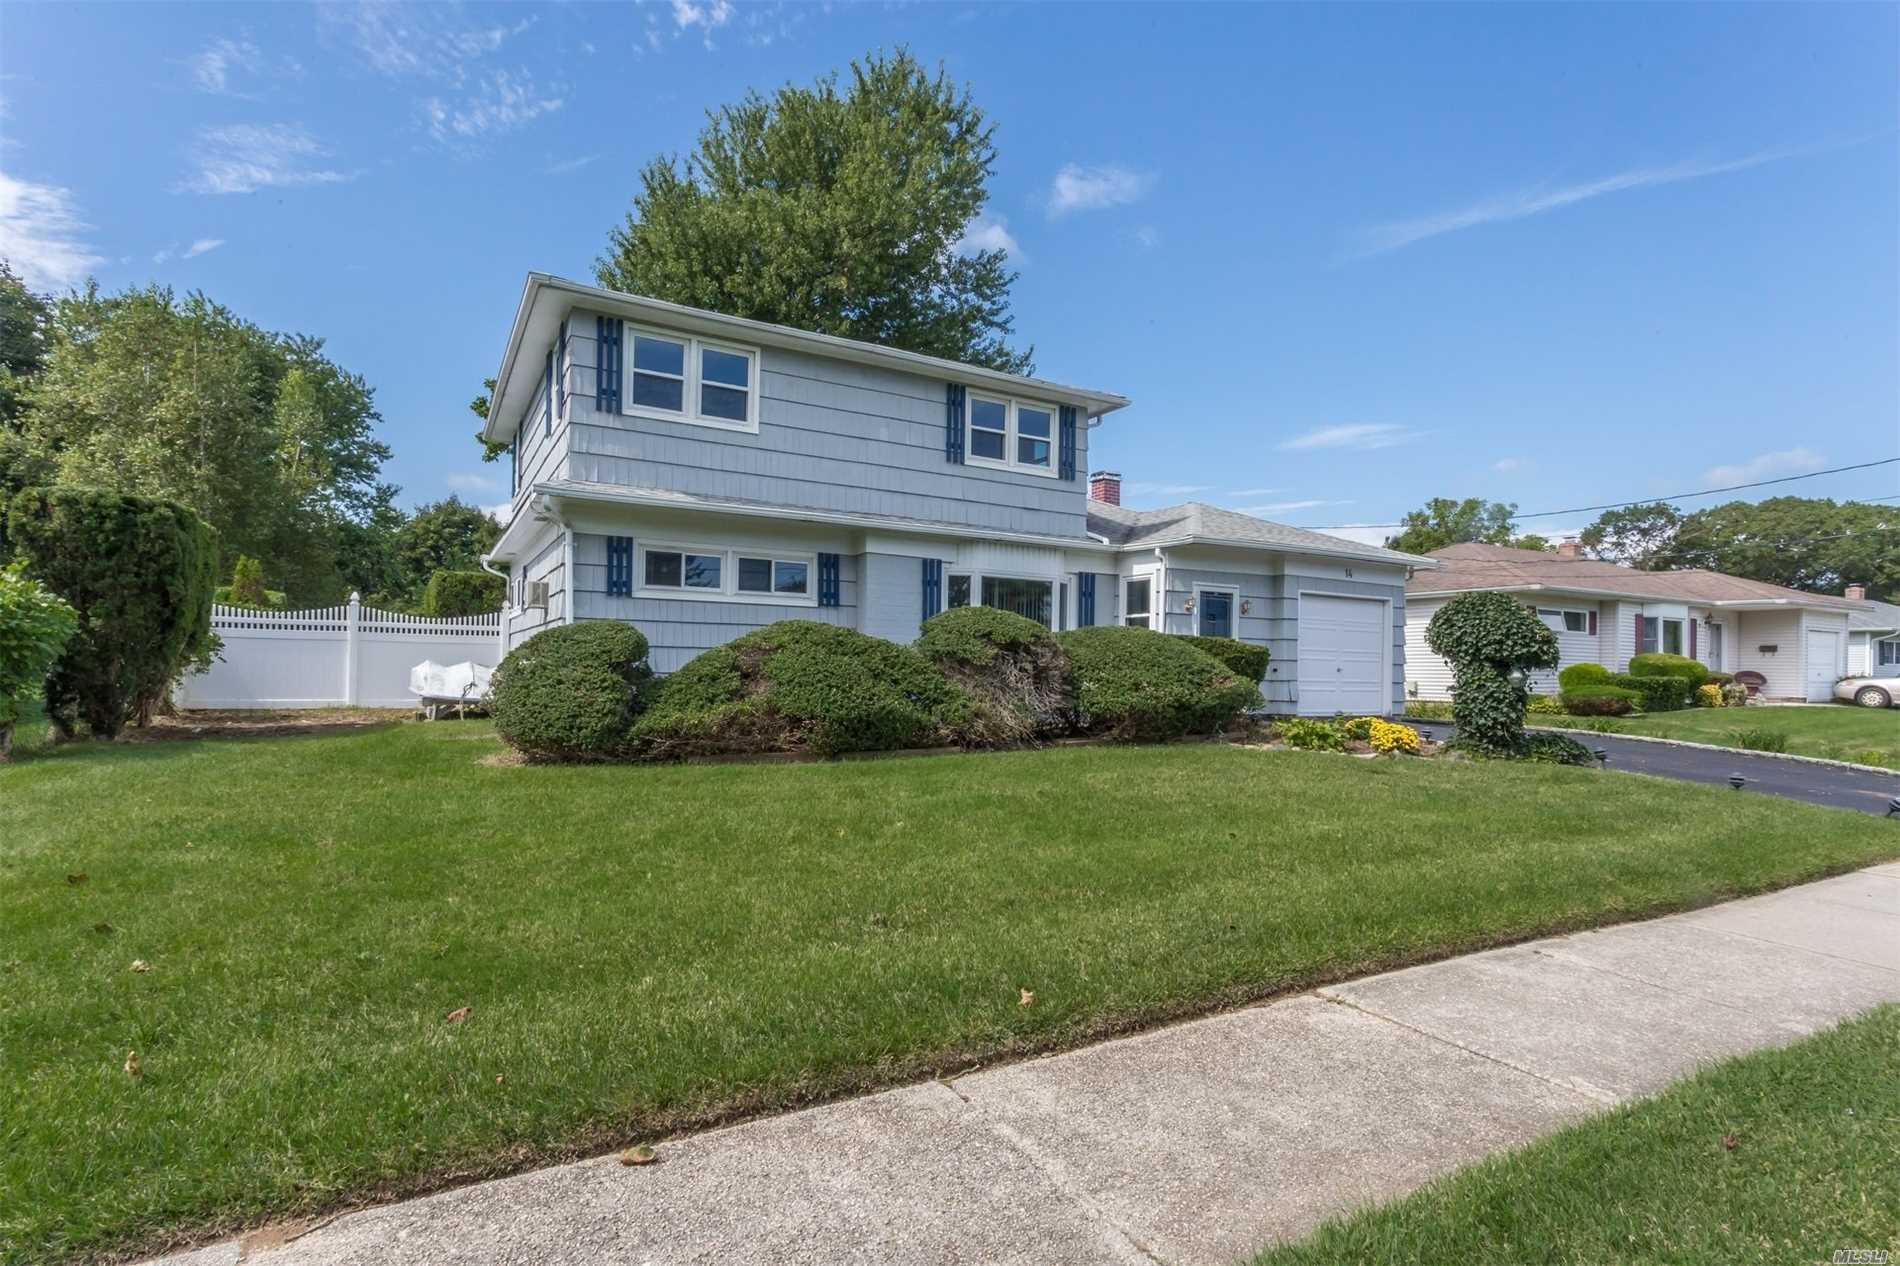 Expanded 5 Bedroom Colonial With Lots Of Potential In Sayville School District. The House Features A Bedroom And Bath On The 1st Floor With 4 Additional Bedrooms On The 2nd Floor With A Full Bath. Large Great Room With Vaulted Ceilings Off The Back Of The House With Sliders The Lead To The Park-Like Fully Fenced In Back Yard. Full Basement And Attached 1 Car Garage. New Roof (2011) With 30 Year Shingles. Great Neighborhood And Steps Away From The Golf Course.